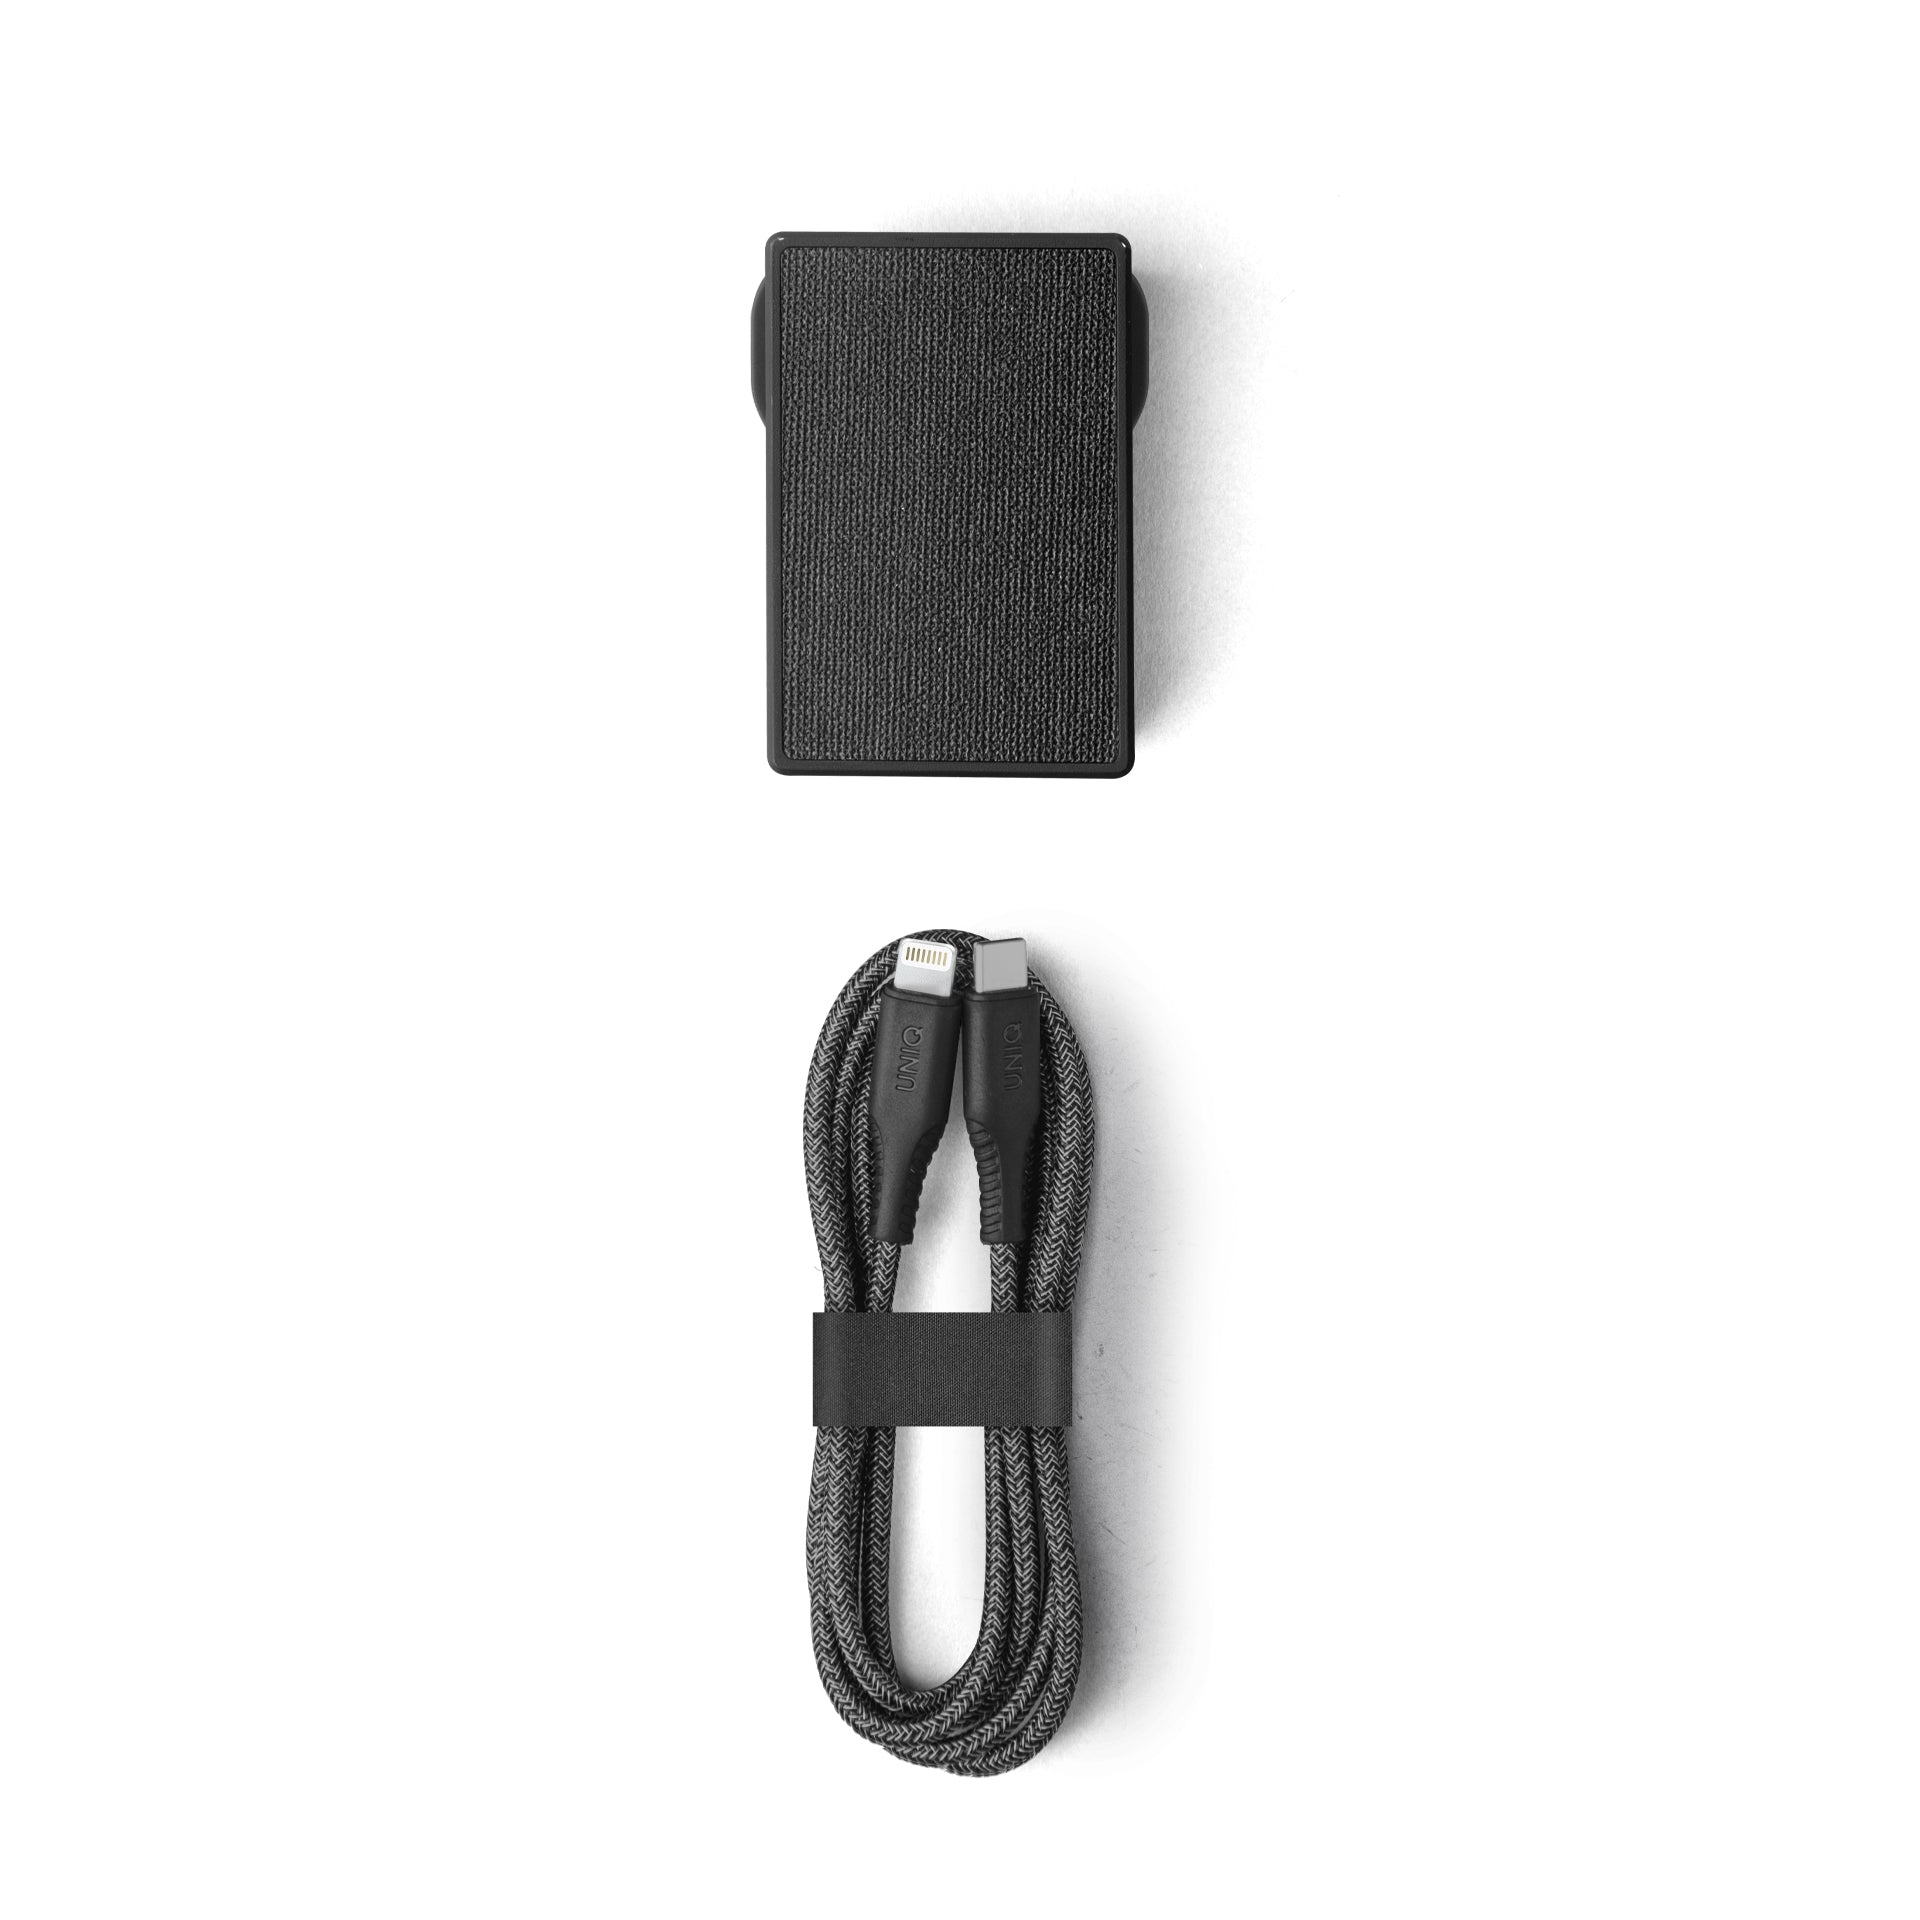 Uniq Votre Slim Kit USB-C PD 18W Wall Charger With USB- C to Lightning Cable(UK) - Charcoal(Black)